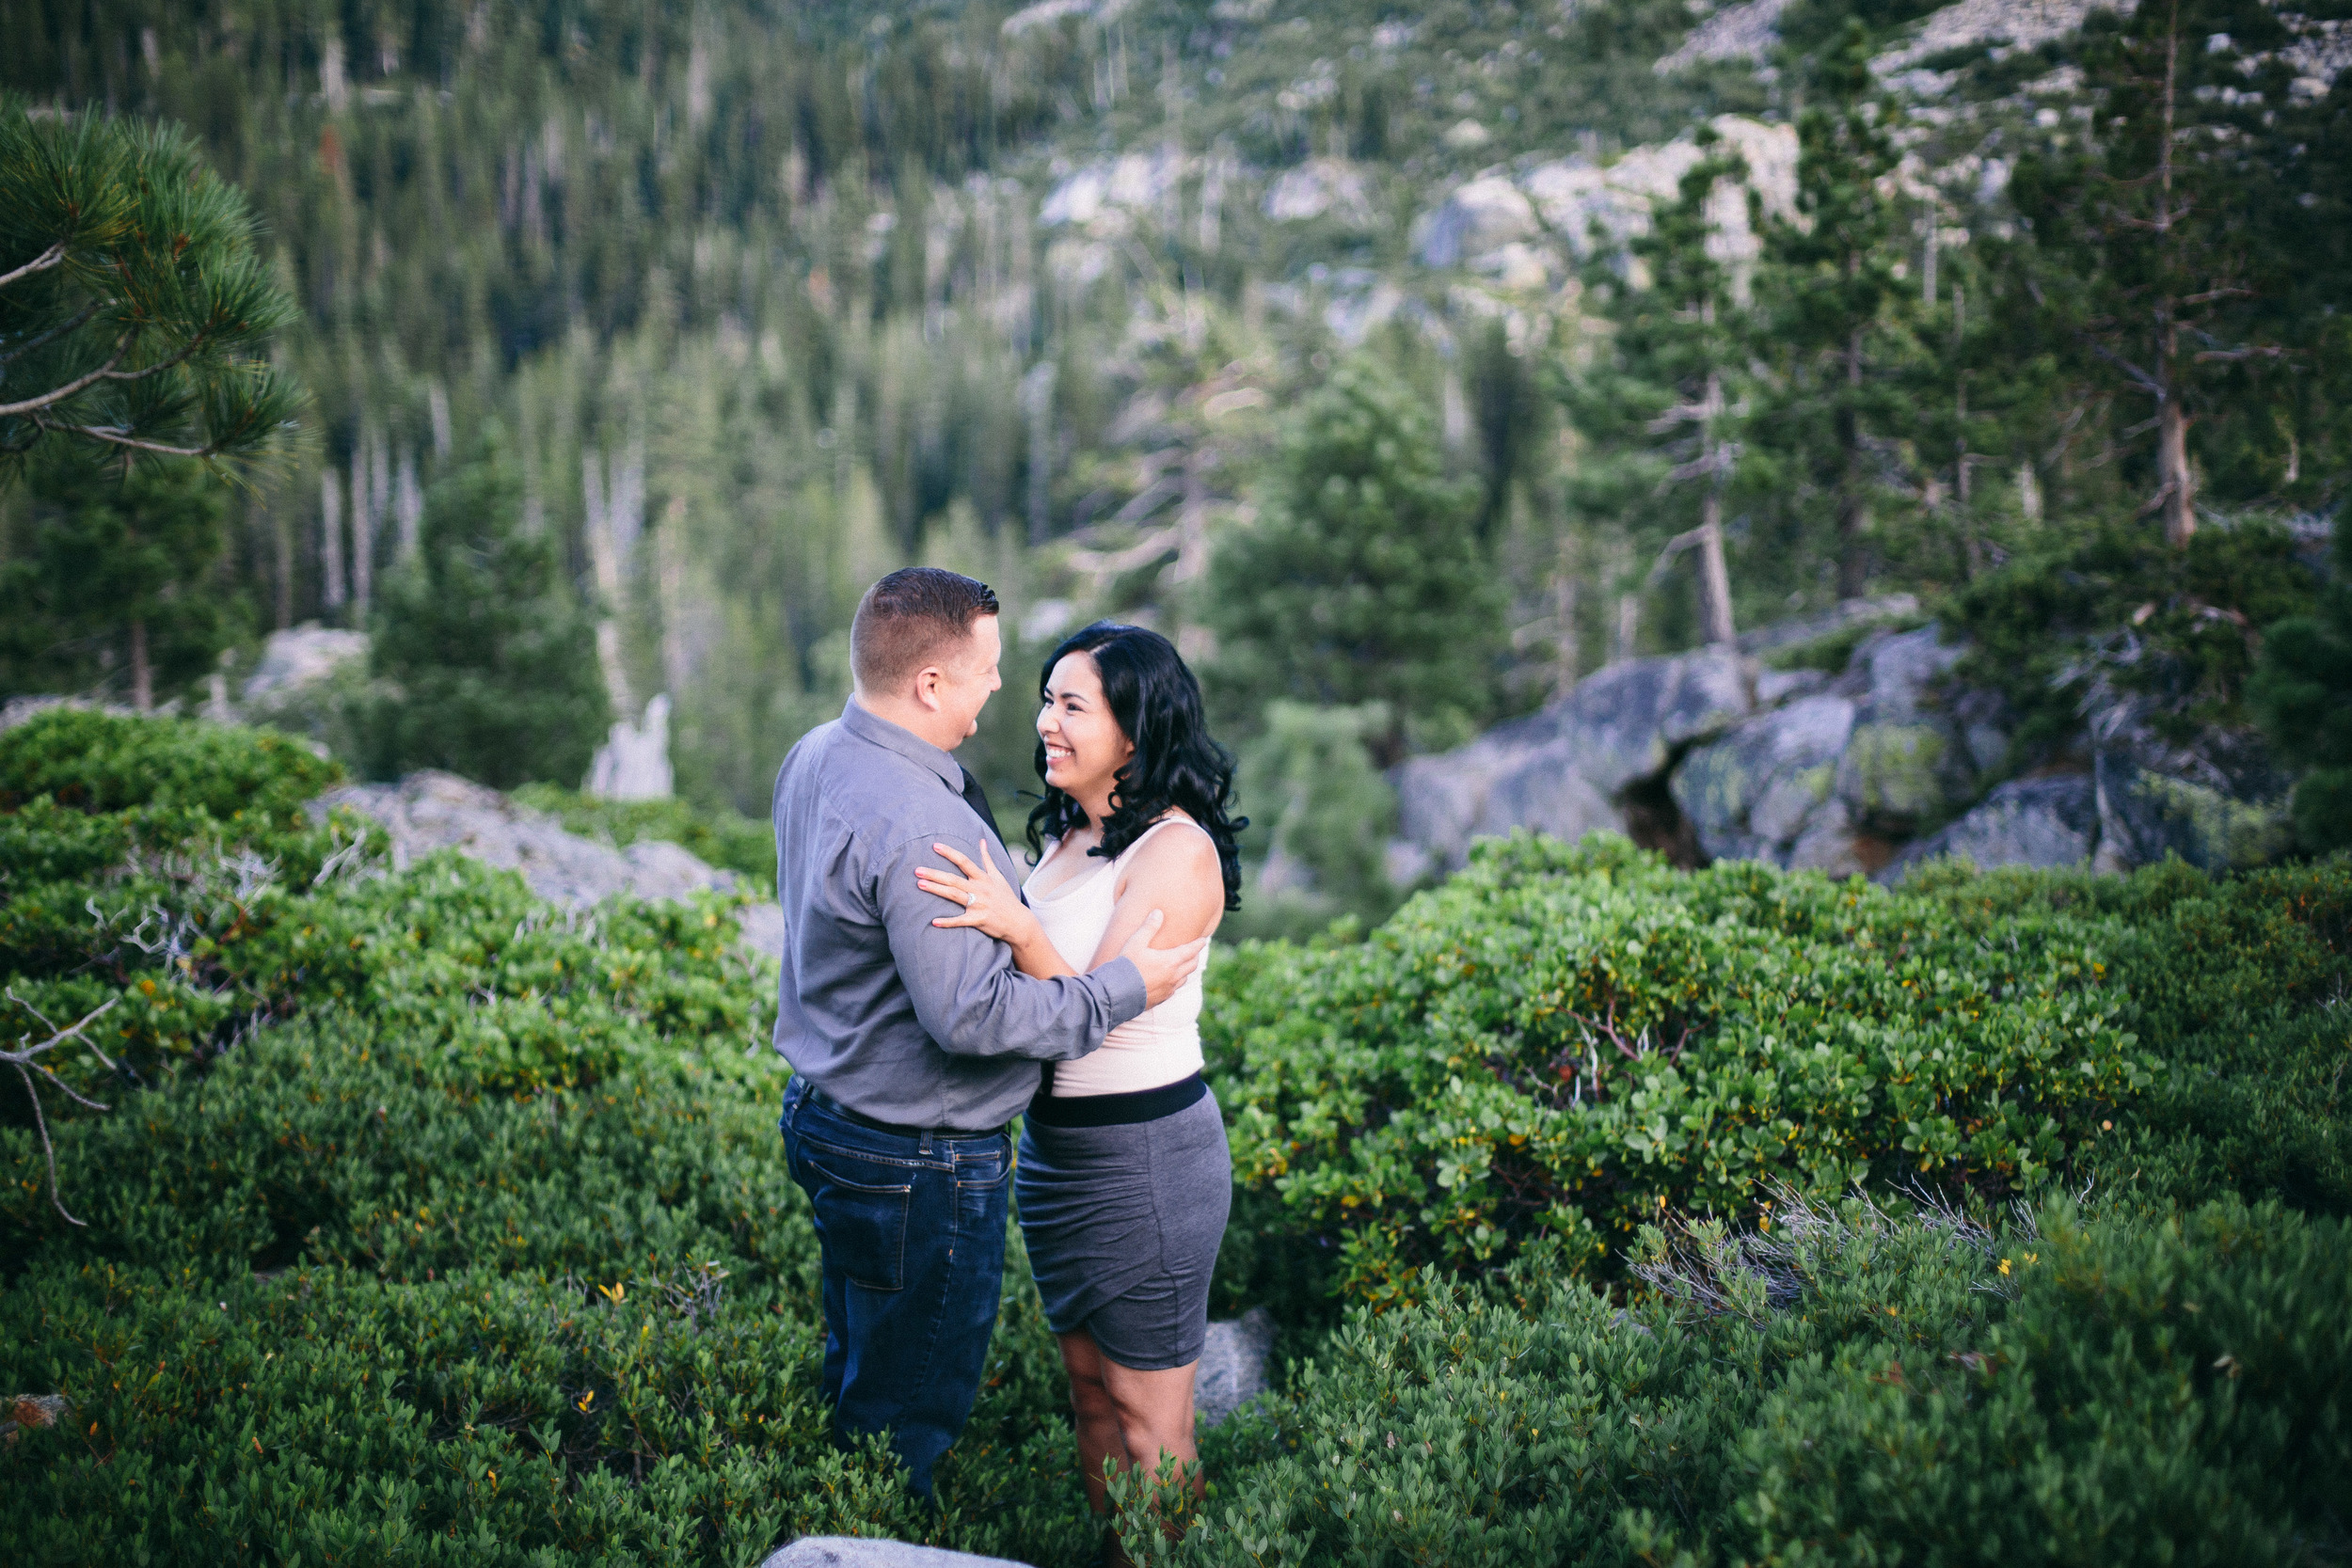 Clint & Veronica Engaged - Corrie Mick Photography-19.jpg